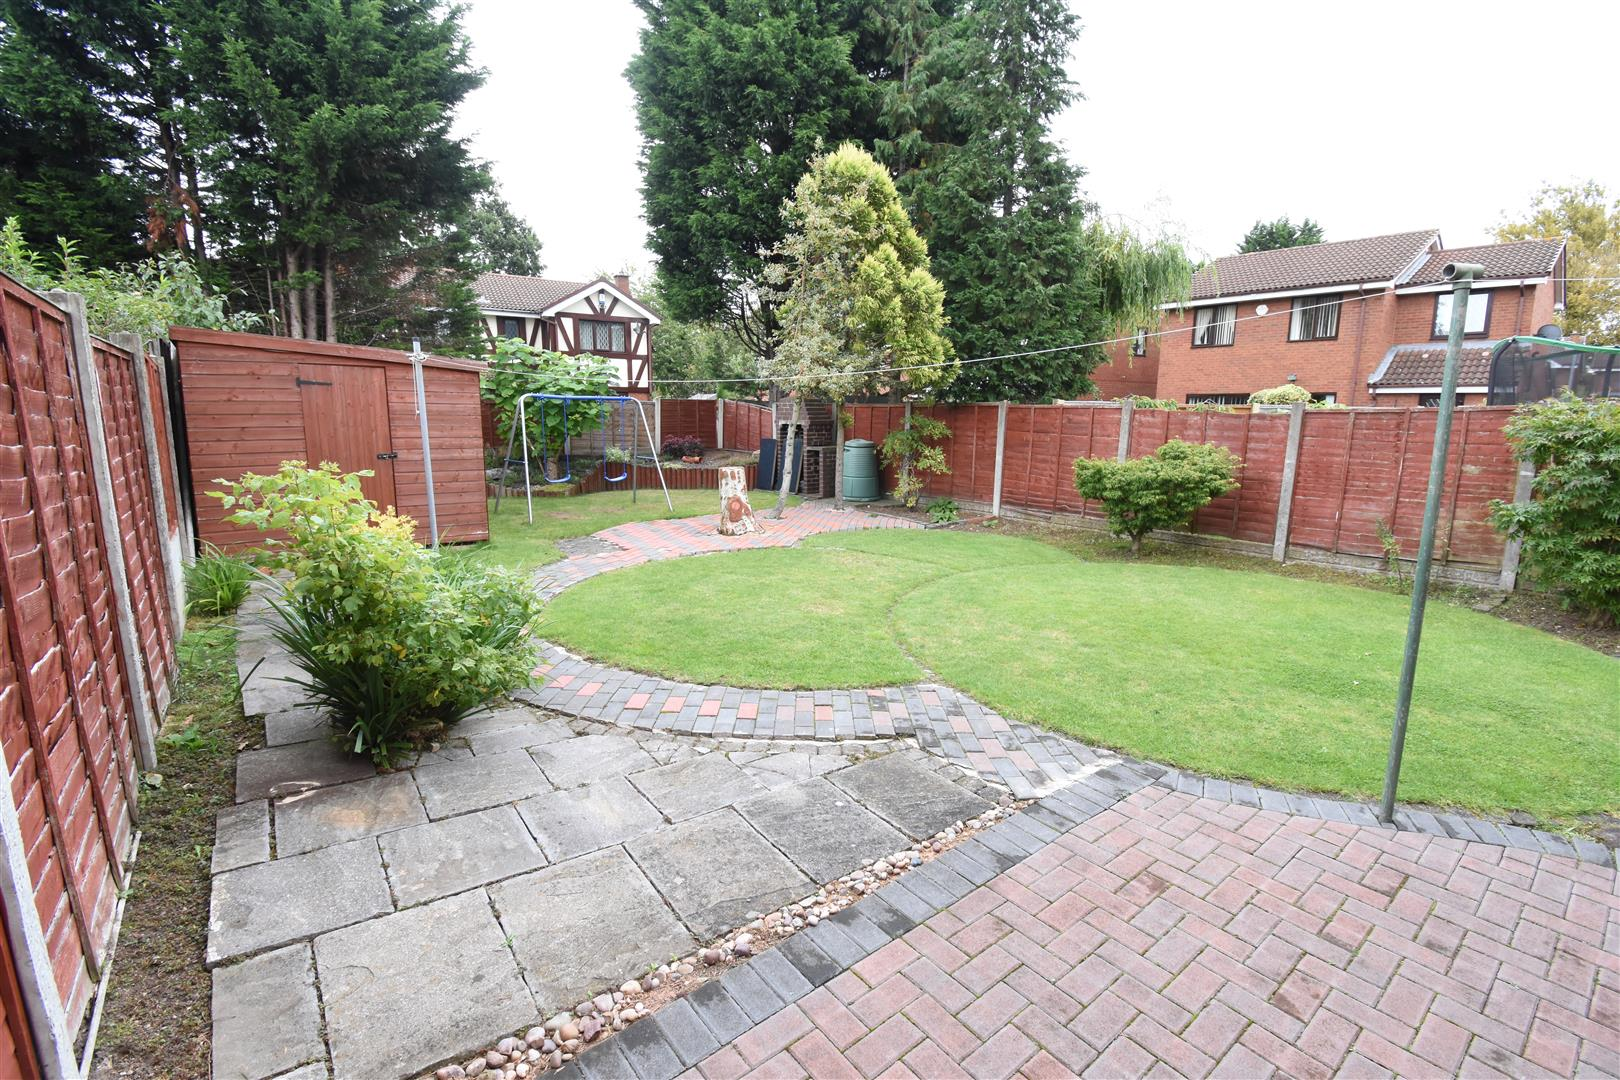 5 bed house for sale in Johnson Close, Ward End, Birmingham 16